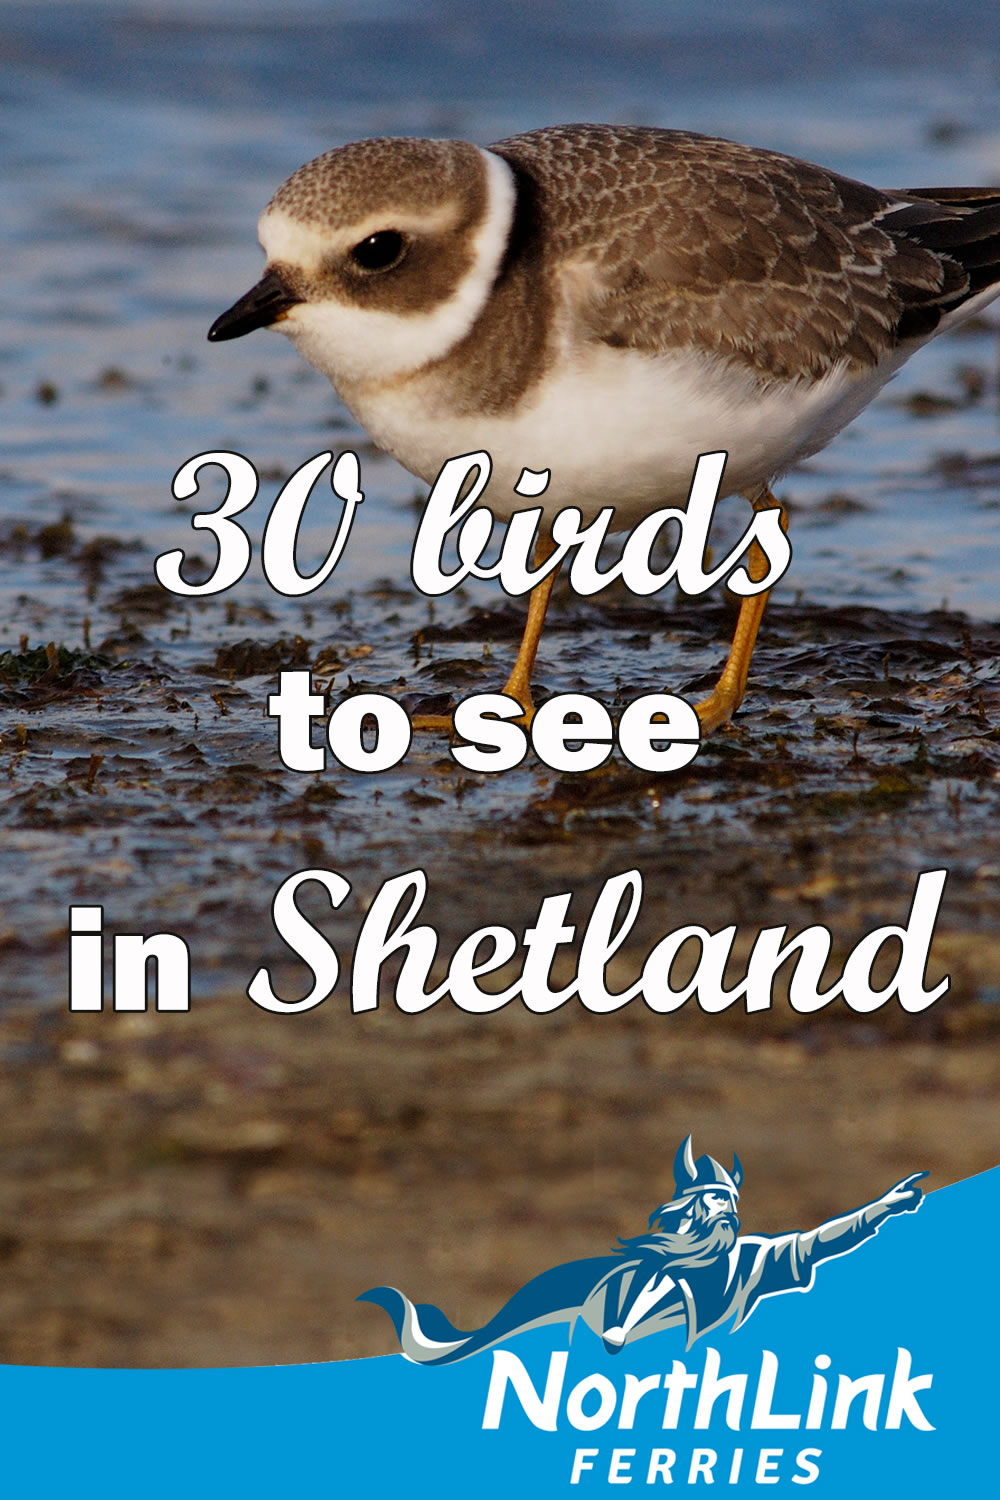 30 birds to see in Shetland